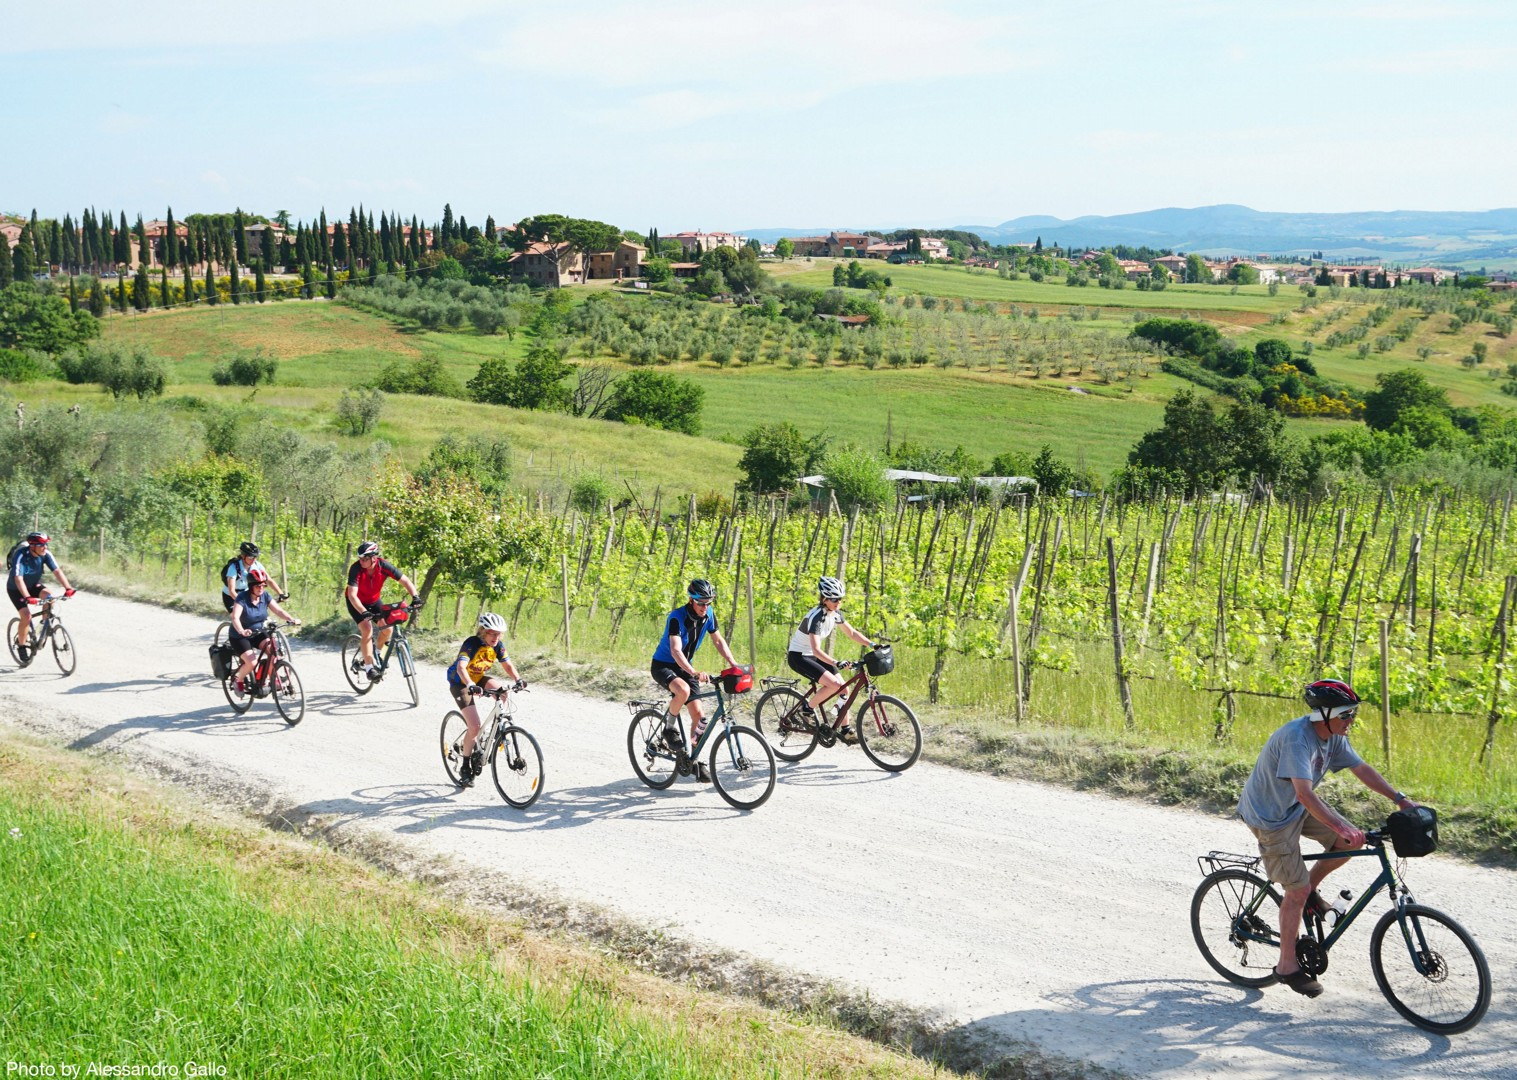 Italy-Via-Francigena-Tuscany-to-Rome-Guided-Leisure-Cycling-Holiday-group-cycling - Italy - Via Francigena (Tuscany to Rome) - Guided Leisure Cycling Holiday - Italia Leisure and Family Cycling